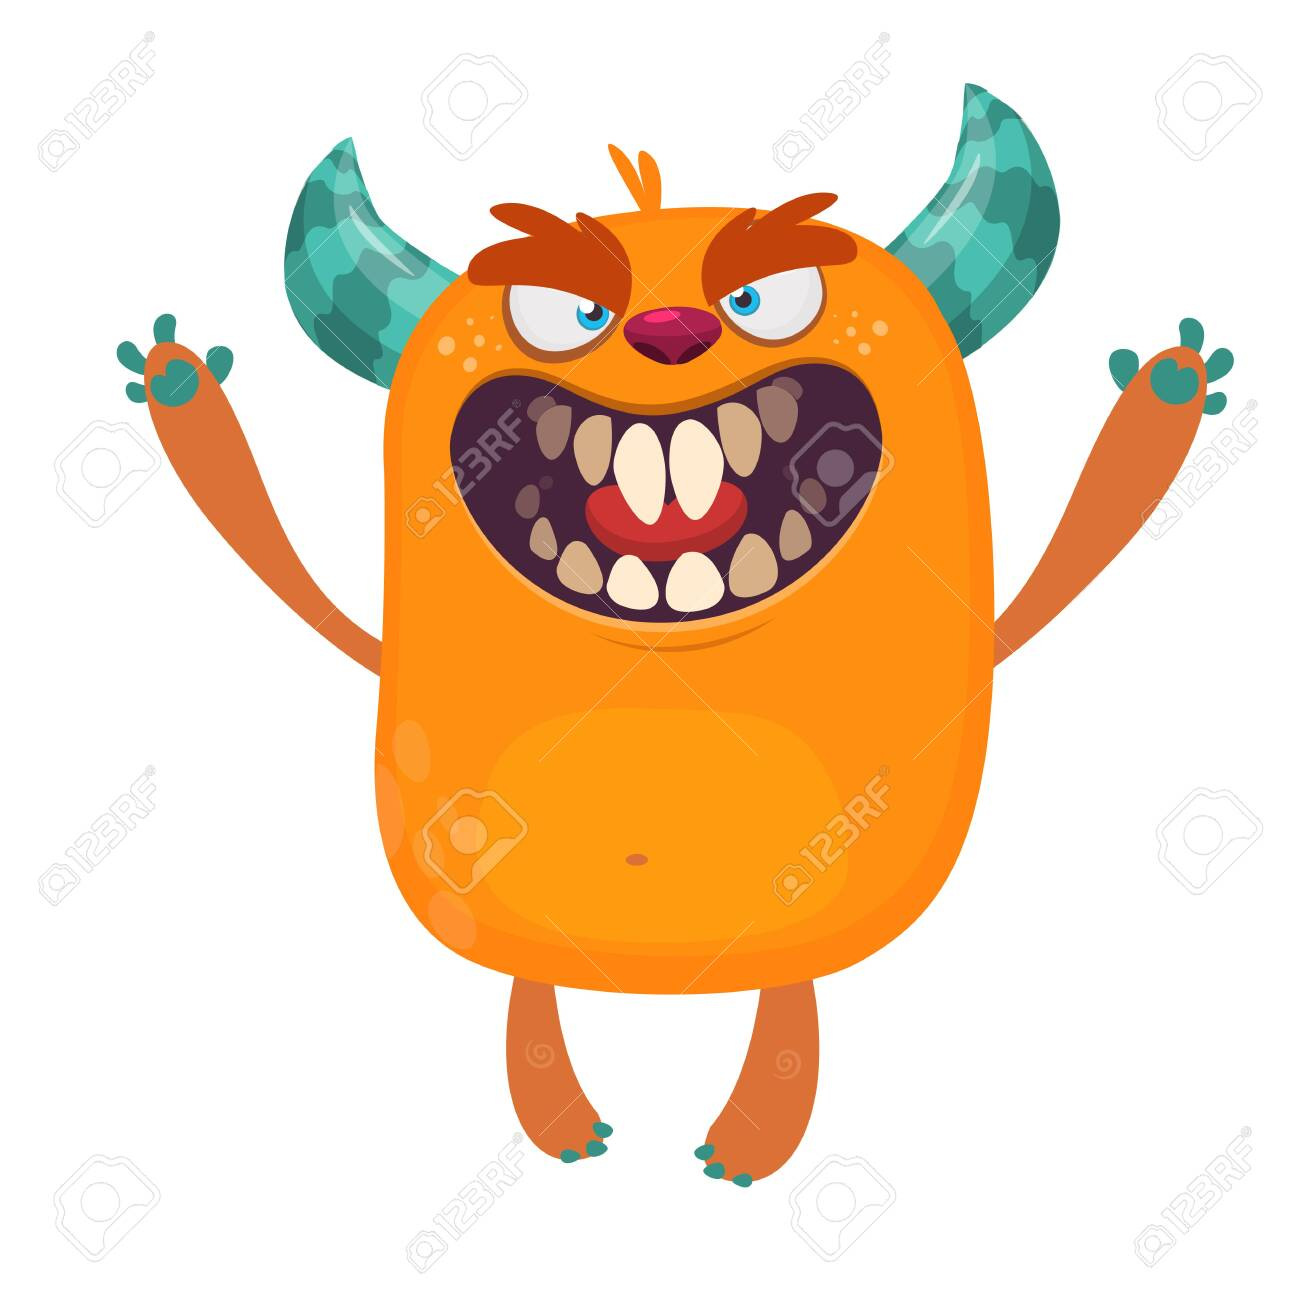 Angry Orange Cartoon Monster With Horns Big Collection Of Cute Royalty Free Cliparts Vectors And Stock Illustration Image 139216895